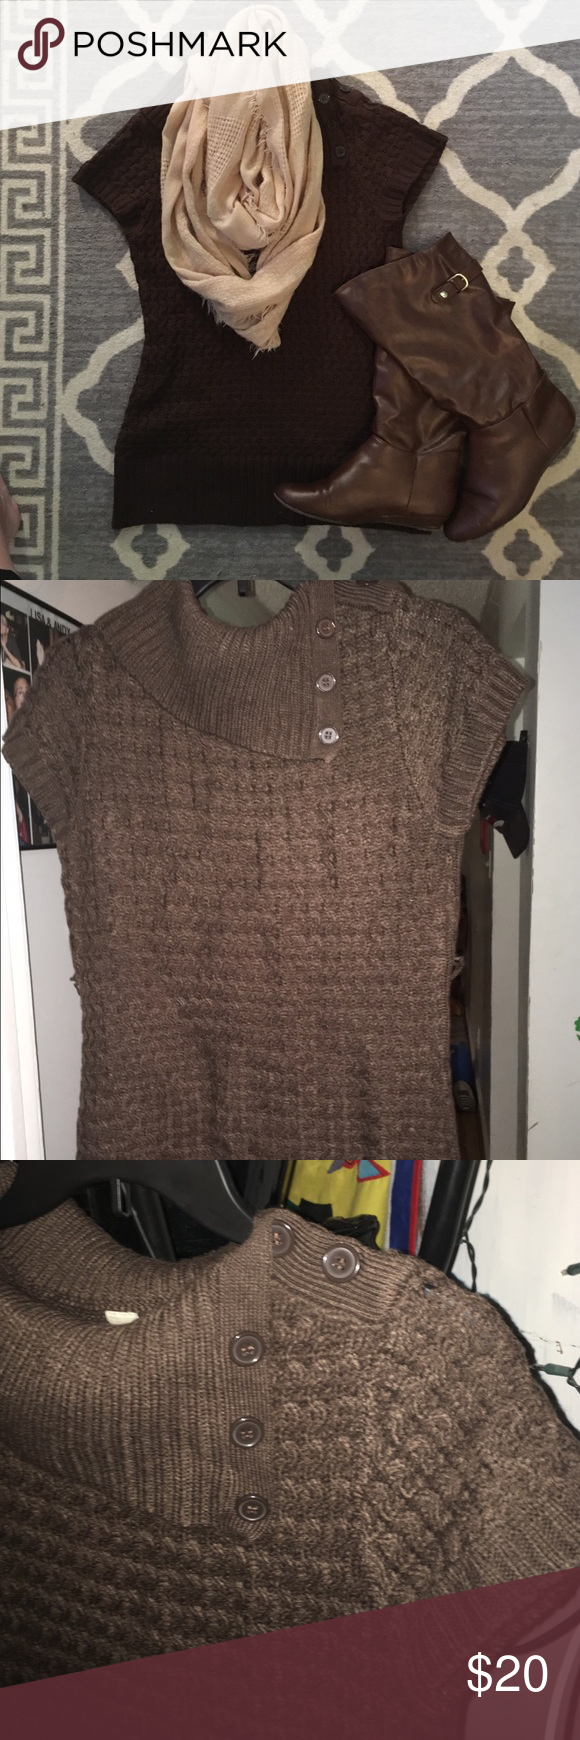 💋cute brown sweater nwt | Brown shorts, Short sleeves and Brown